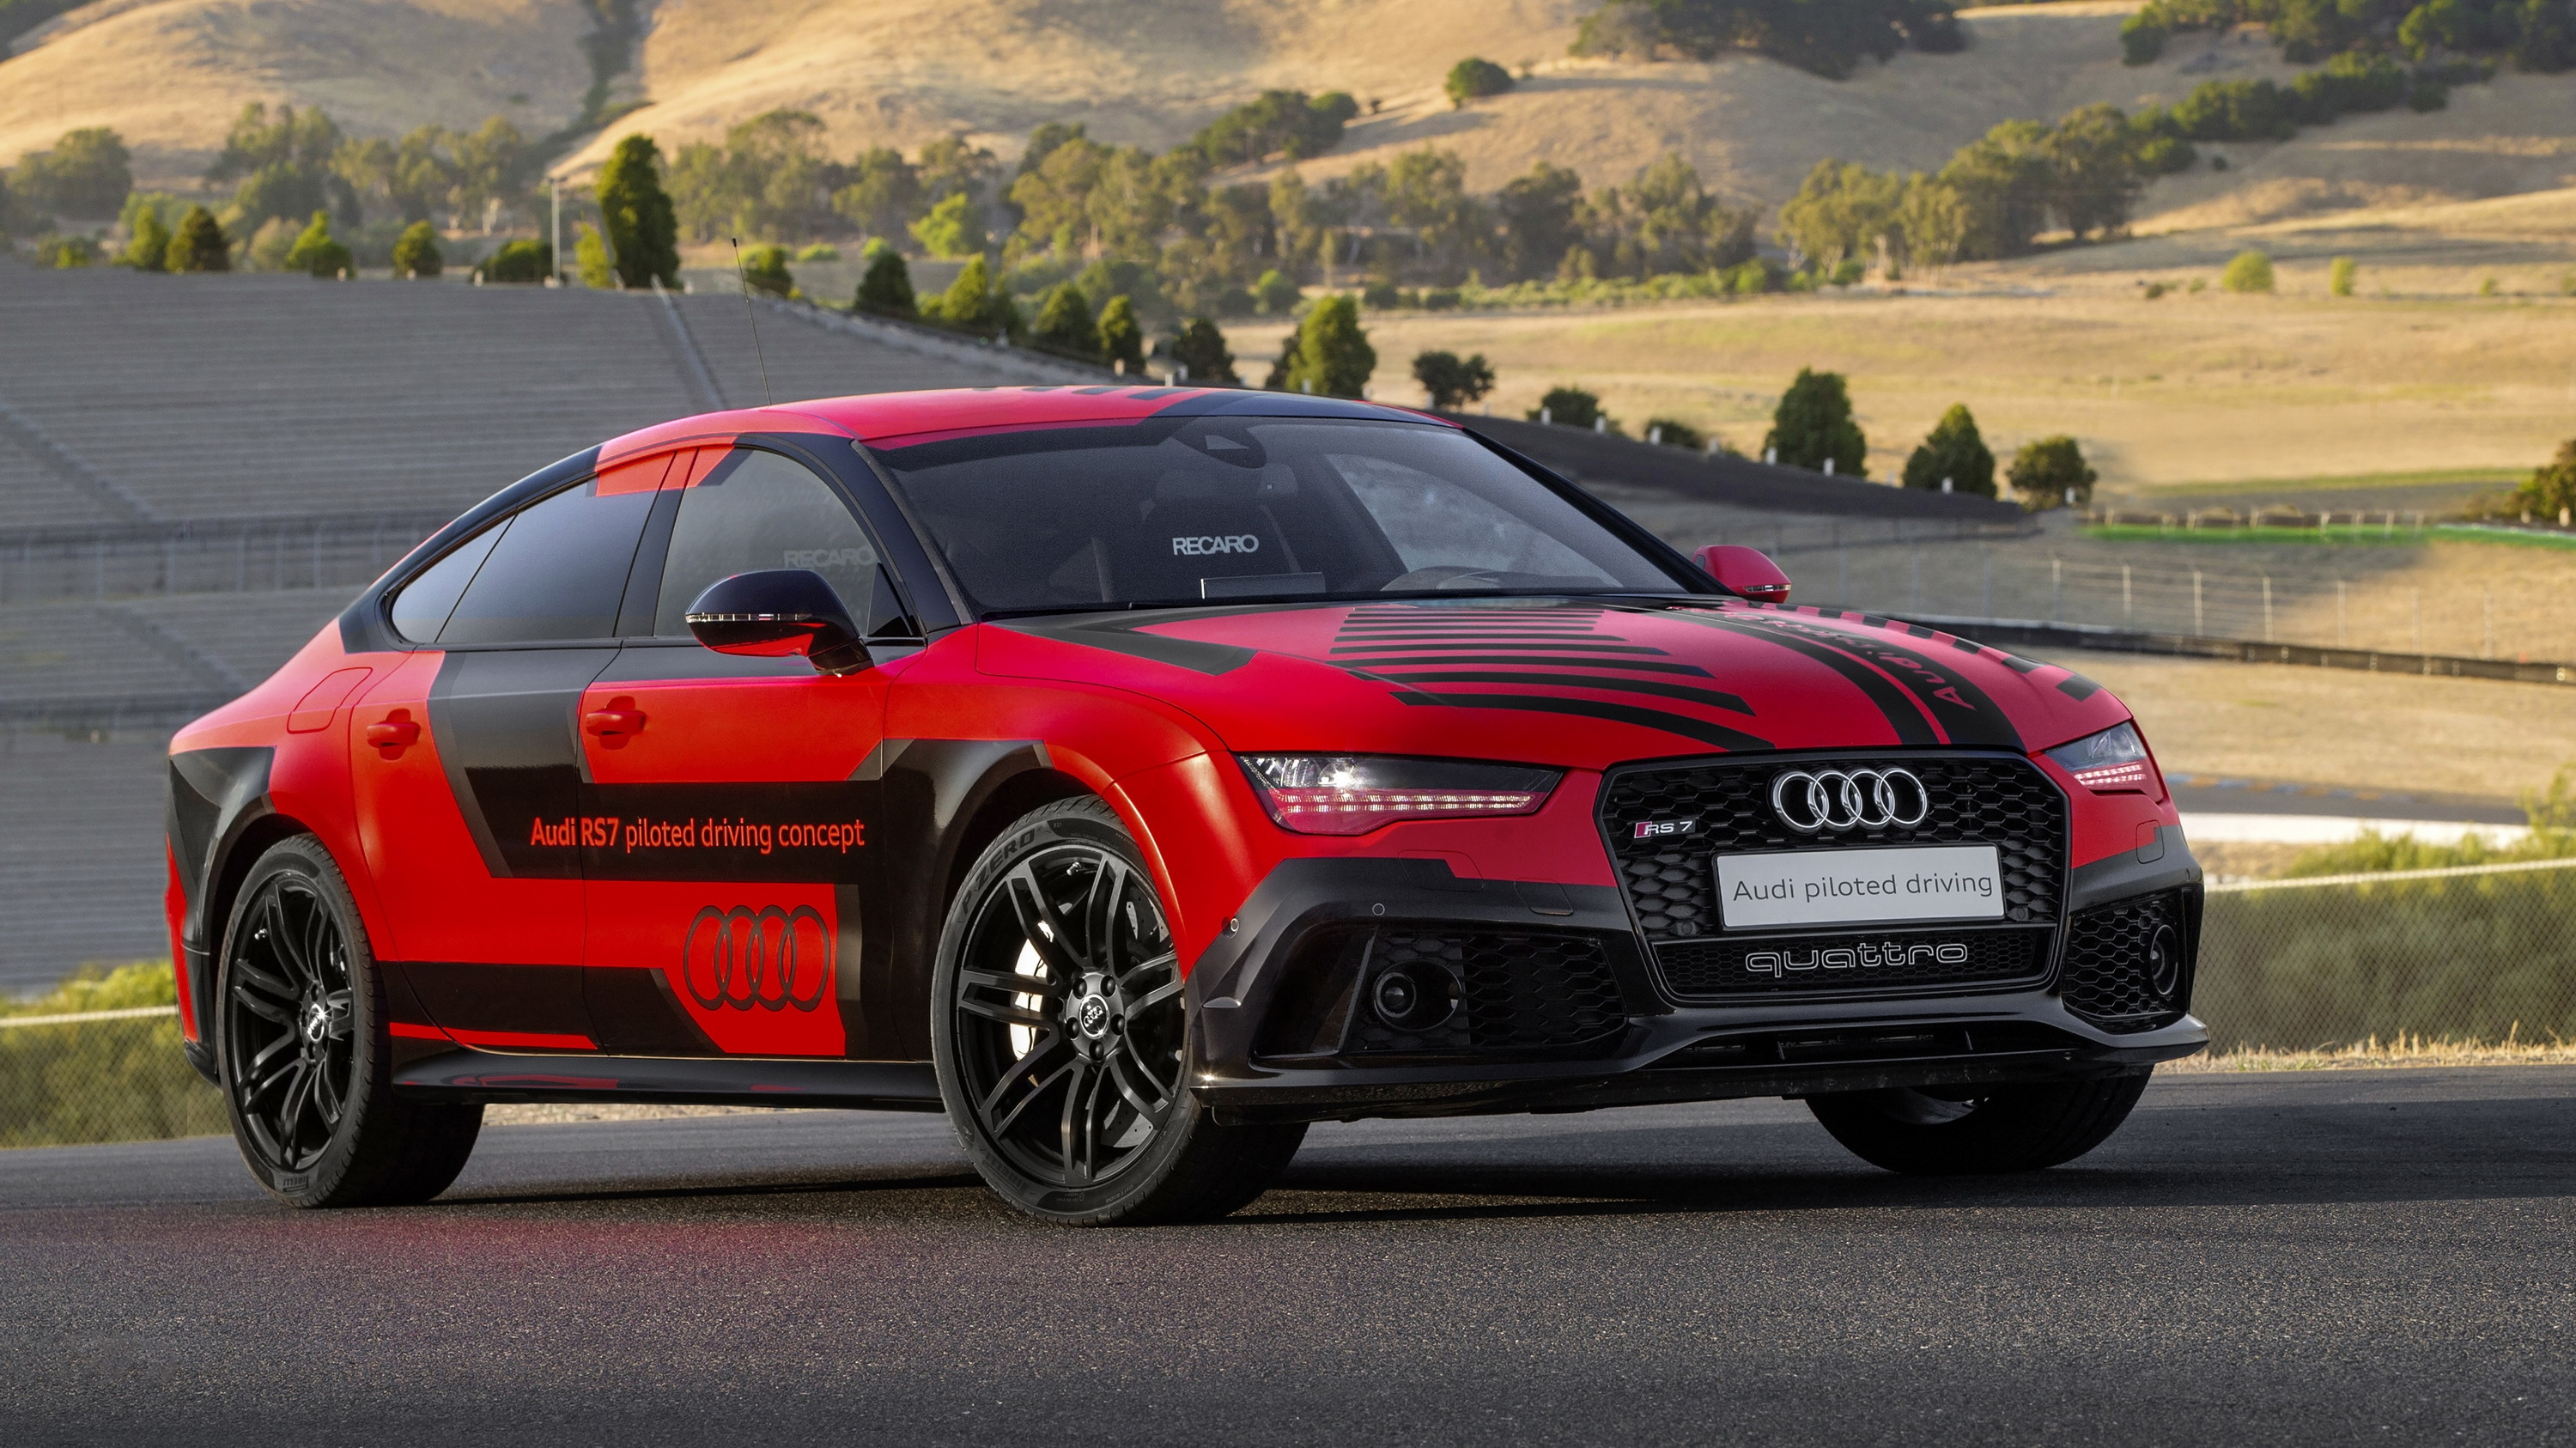 2015 Audi Rs 7 Quot Robby Quot Piloted Driving Concept Review